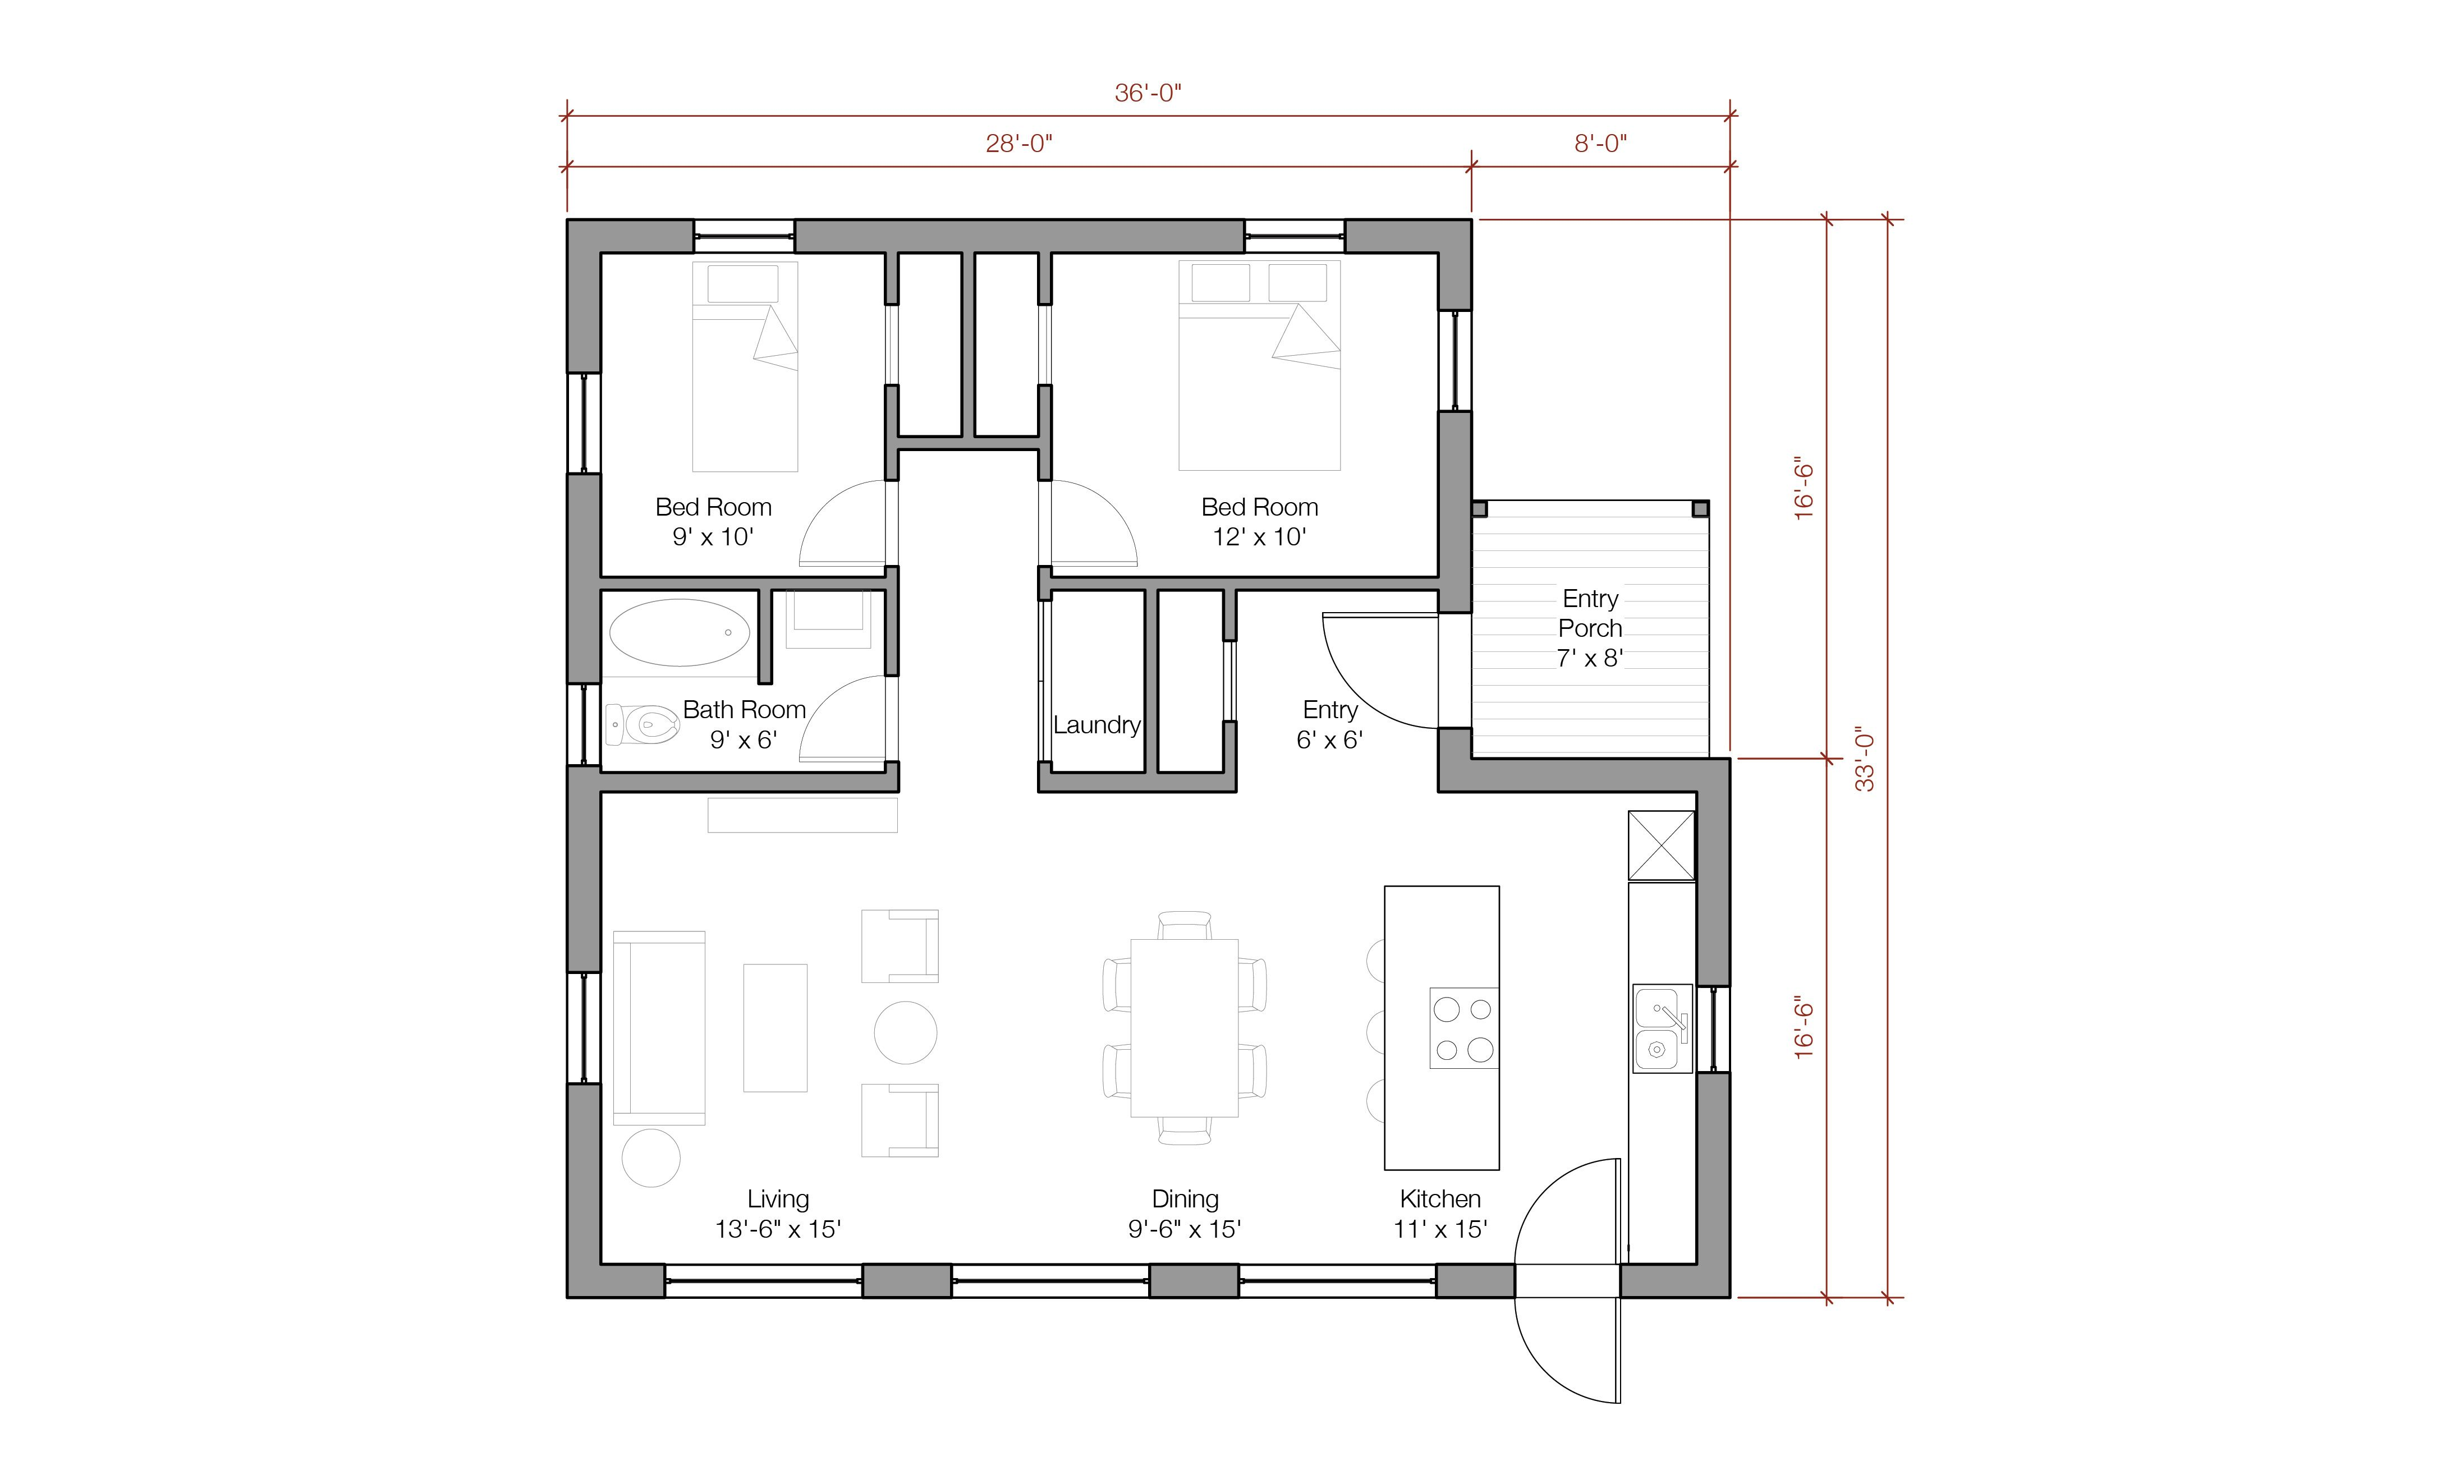 1100 Sq Foot House Plans | 1100 square foot energy-efficient ...